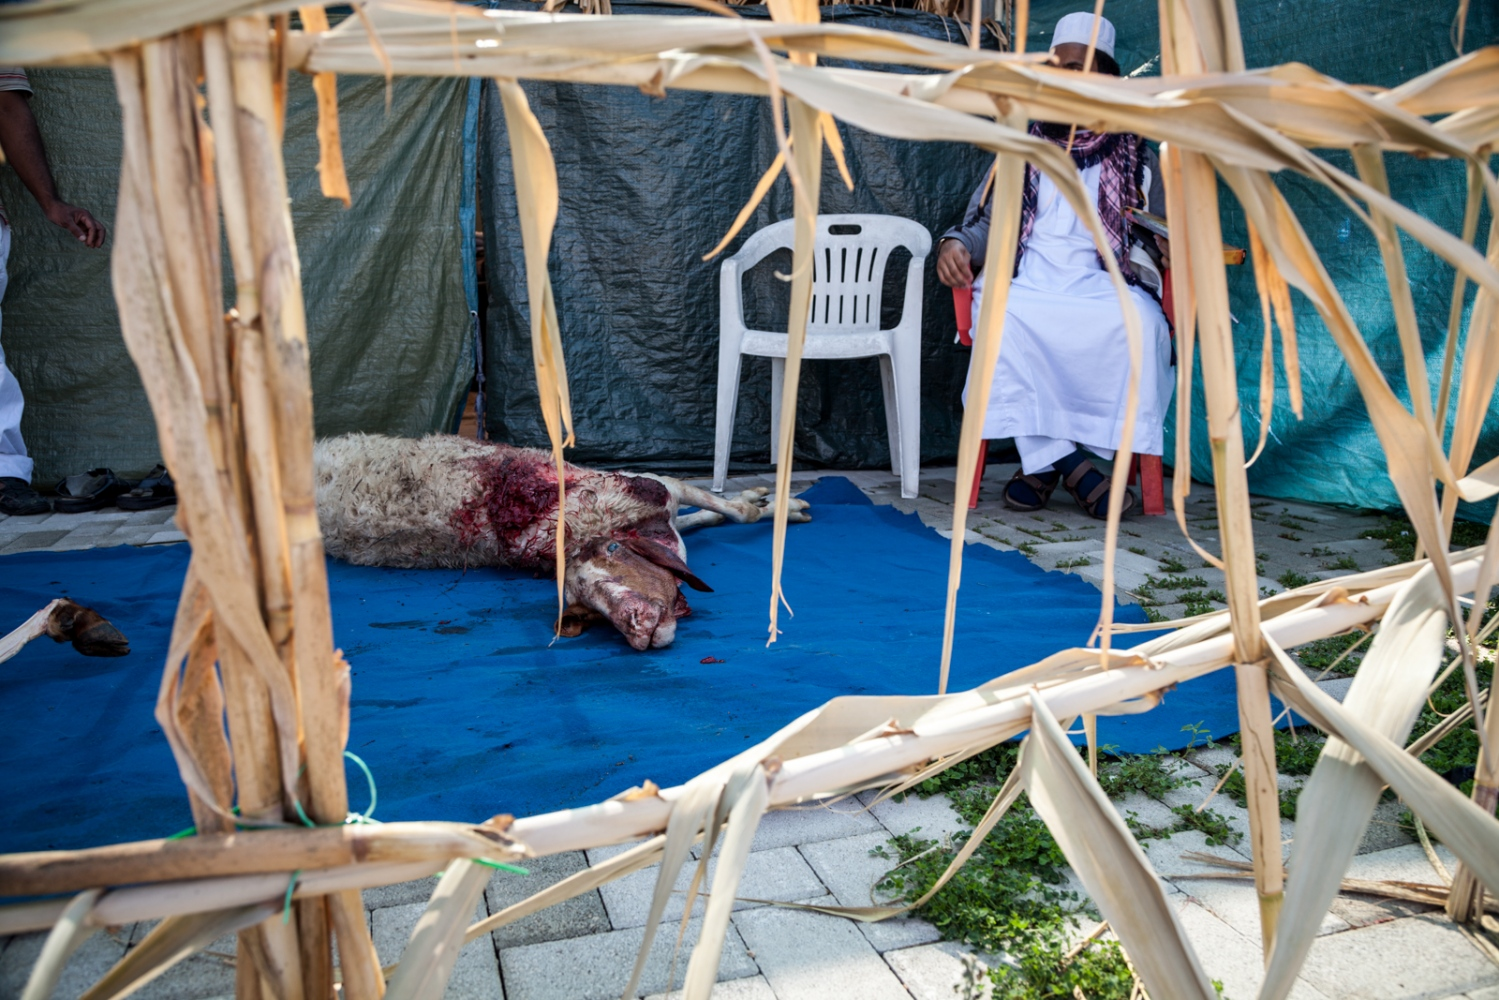 Oct. 4, 2014 - A man sits next to one of the nine sheep that have been killed by some members of the muslim community, to celebrate Eid al-Adha,  in Torpignattara, a working class neighborhood in southeastern Rome.